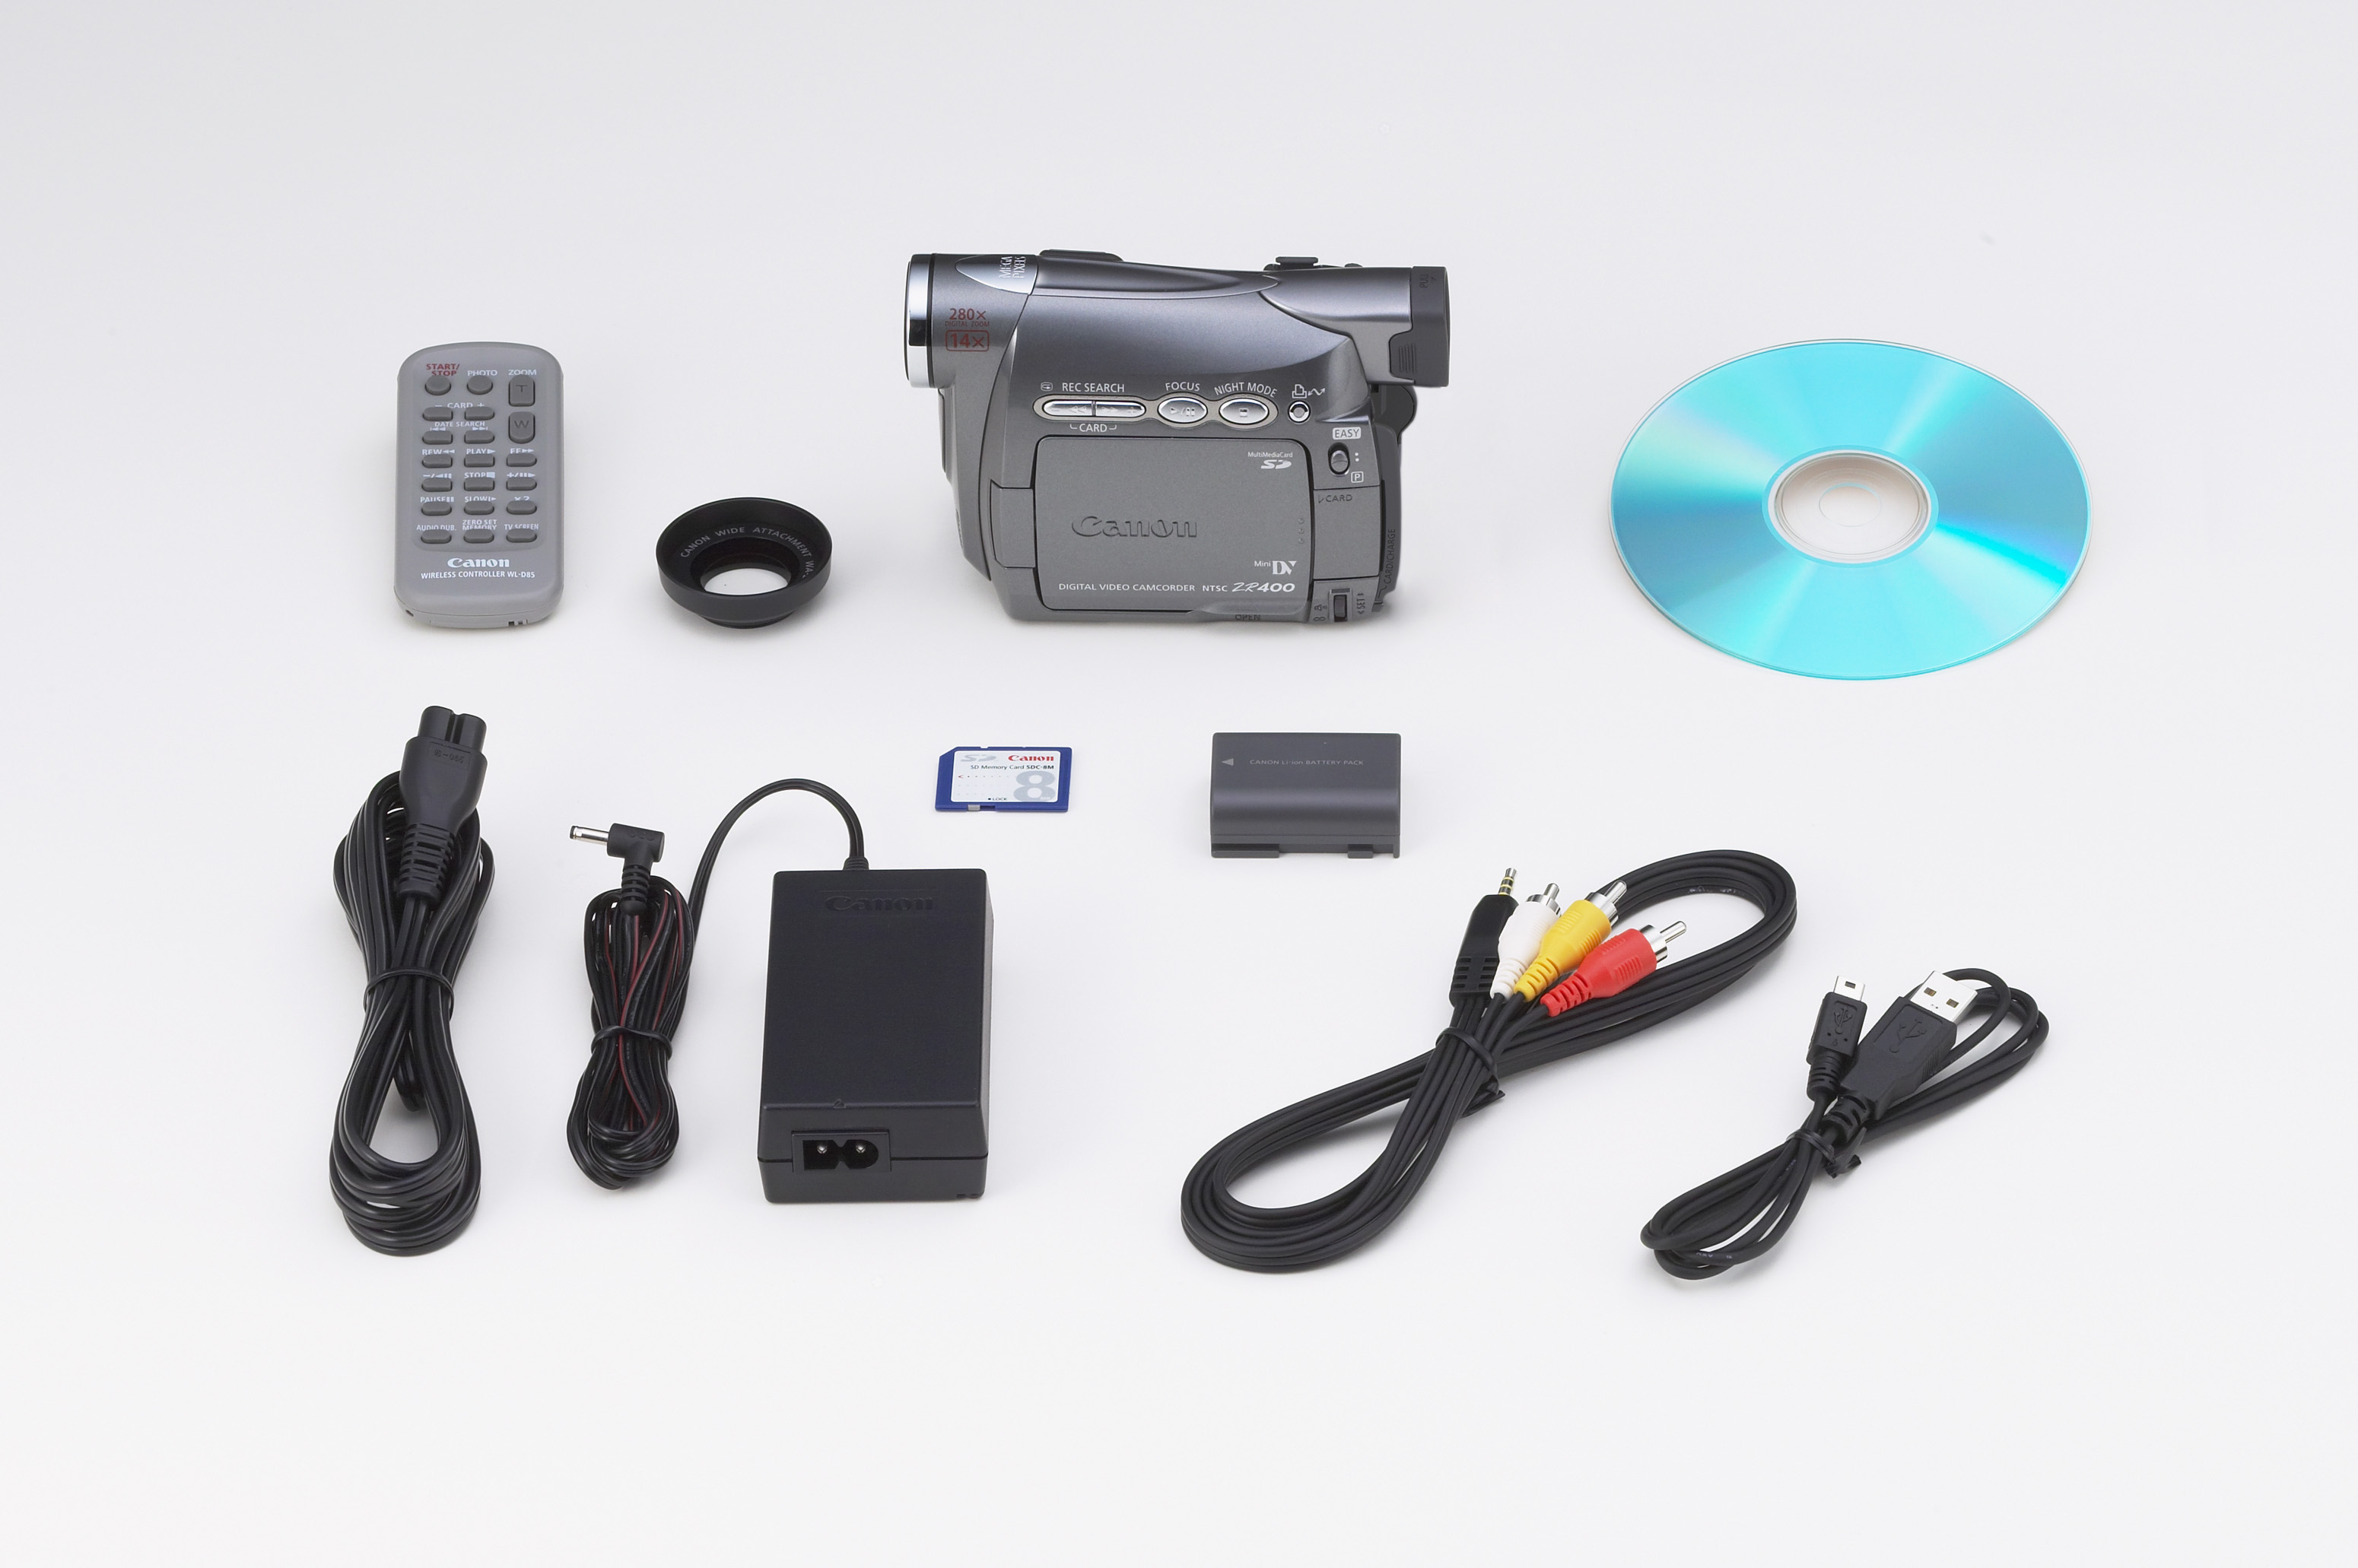 ZR400 Kit Contents